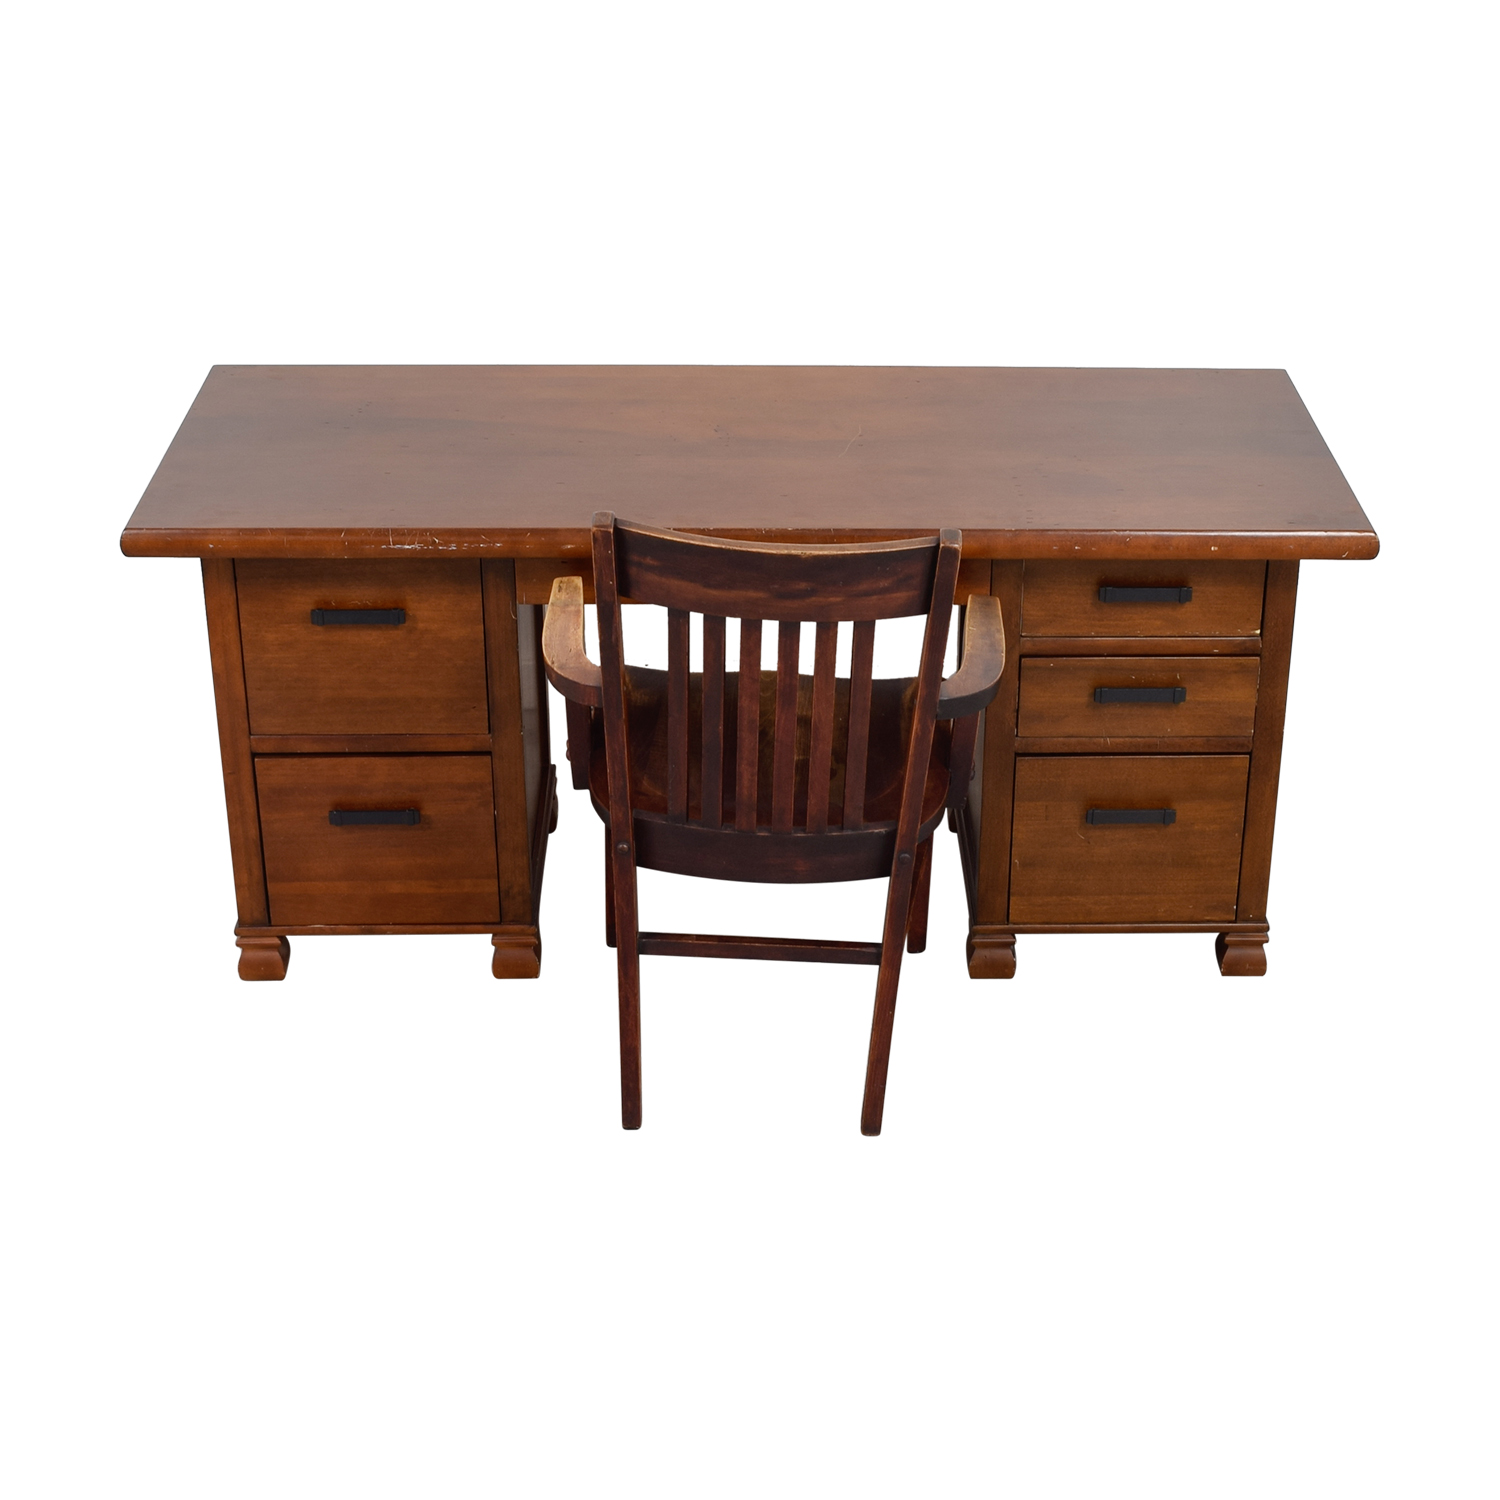 Pottery Barn Wooden Cherry Desk with Chair / Tables